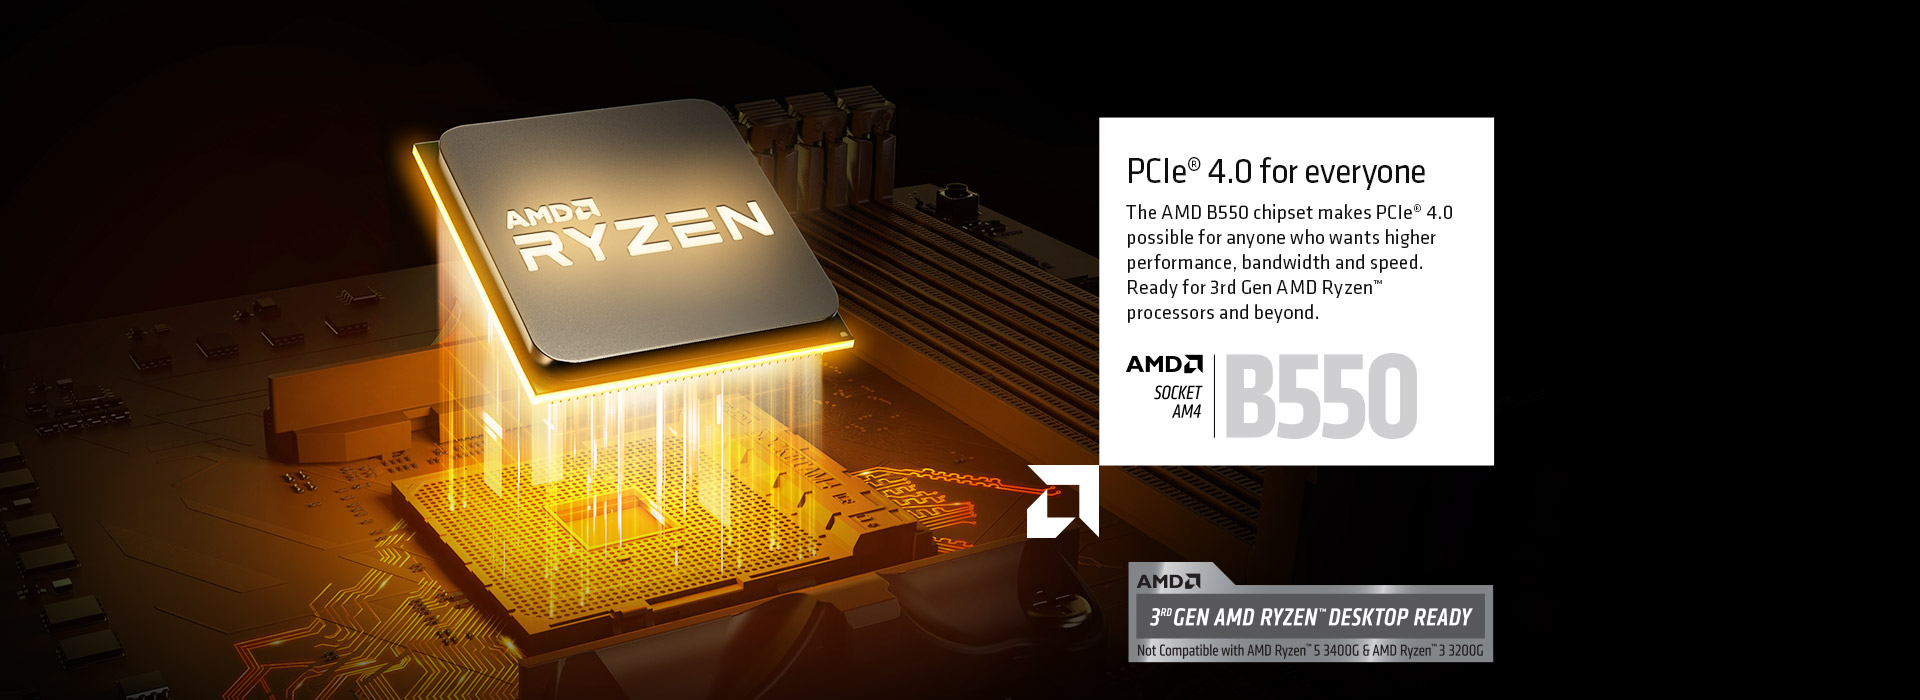 AMD RYZEN of the motherboard